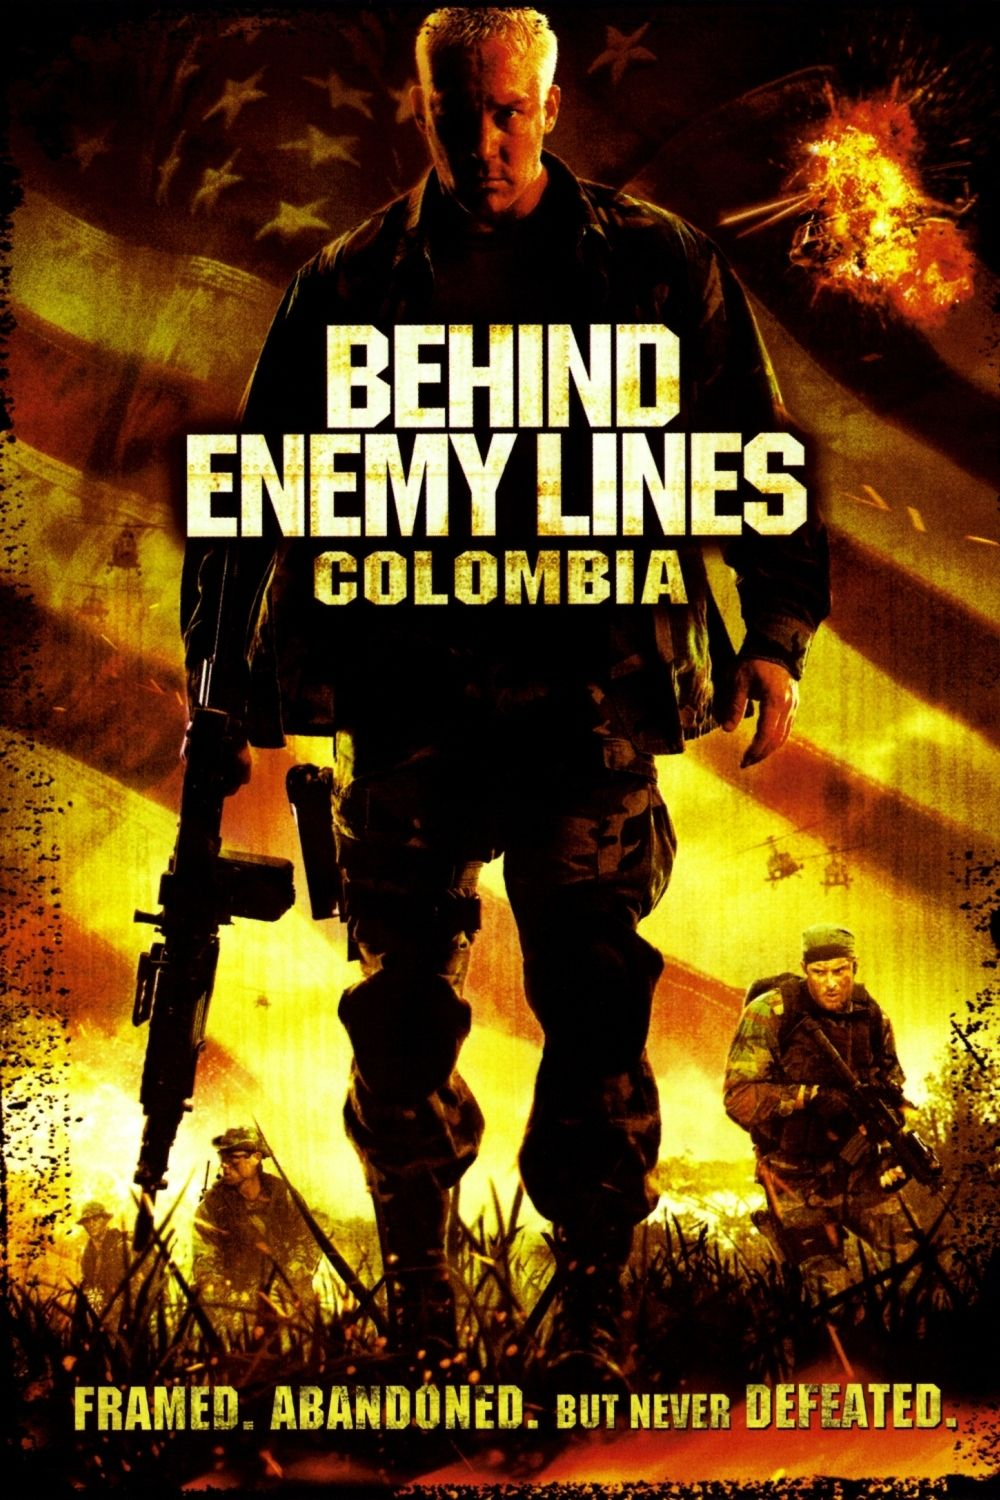 Behind Enemy Lines Colombia Enemy, Colombia, Free movies